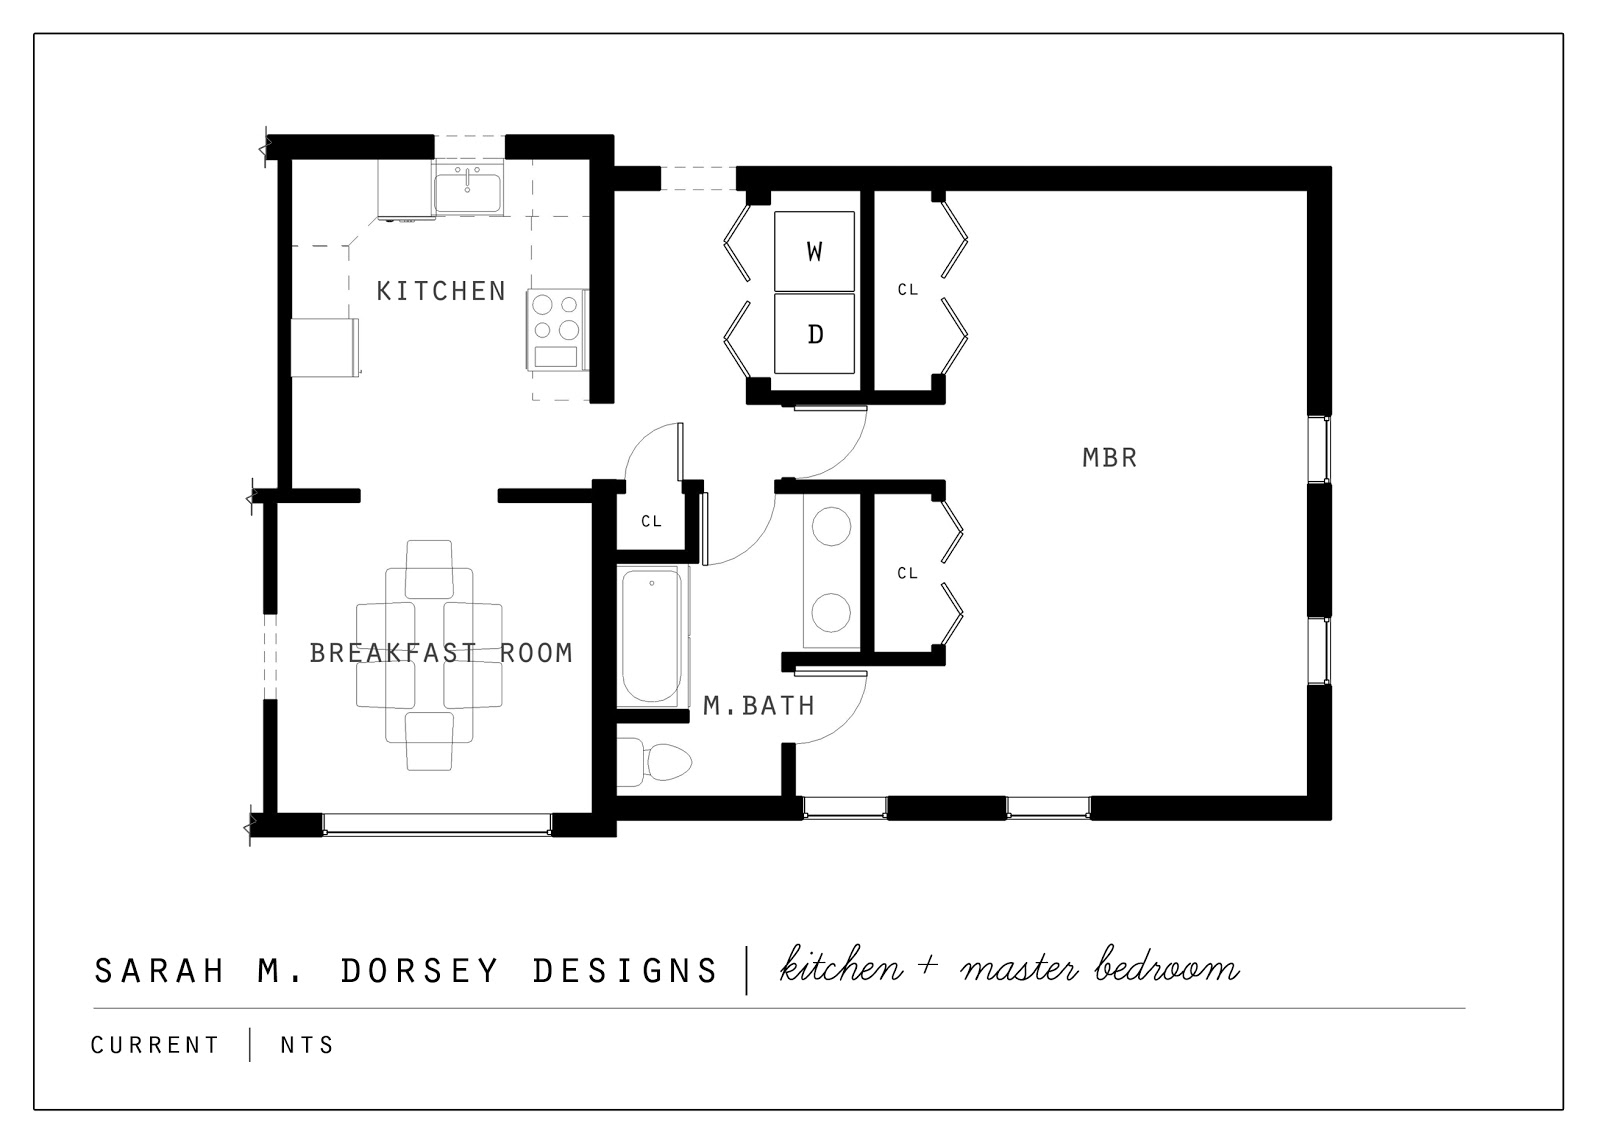 Sarah m dorsey designs proposed kitchen and master suite for Typical house design